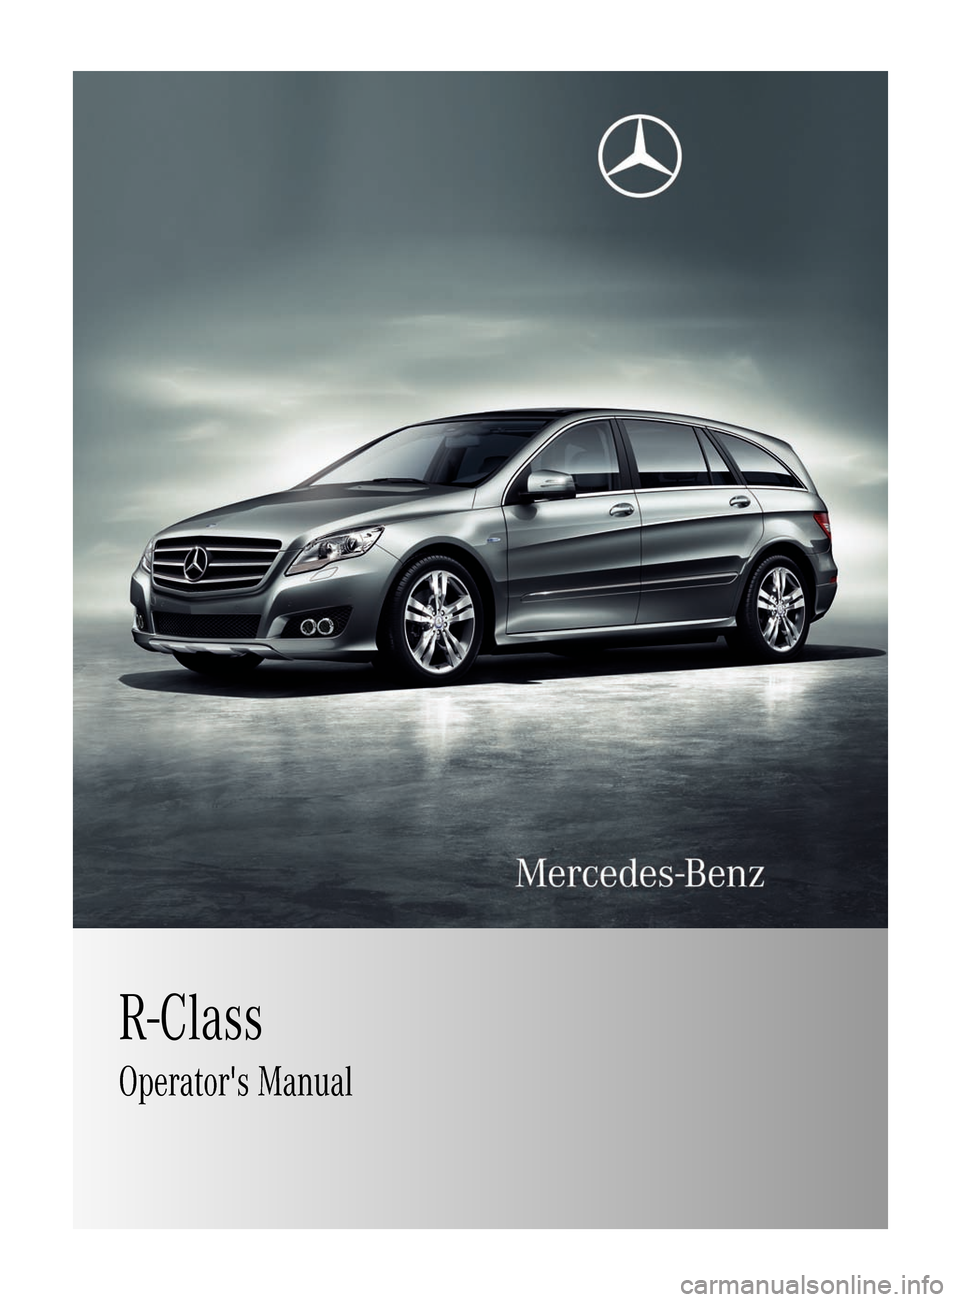 mercedes benz r class 2011 w251 owner s manual rh carmanualsonline info 2013 Mercedes R350 2012 Mercedes R350